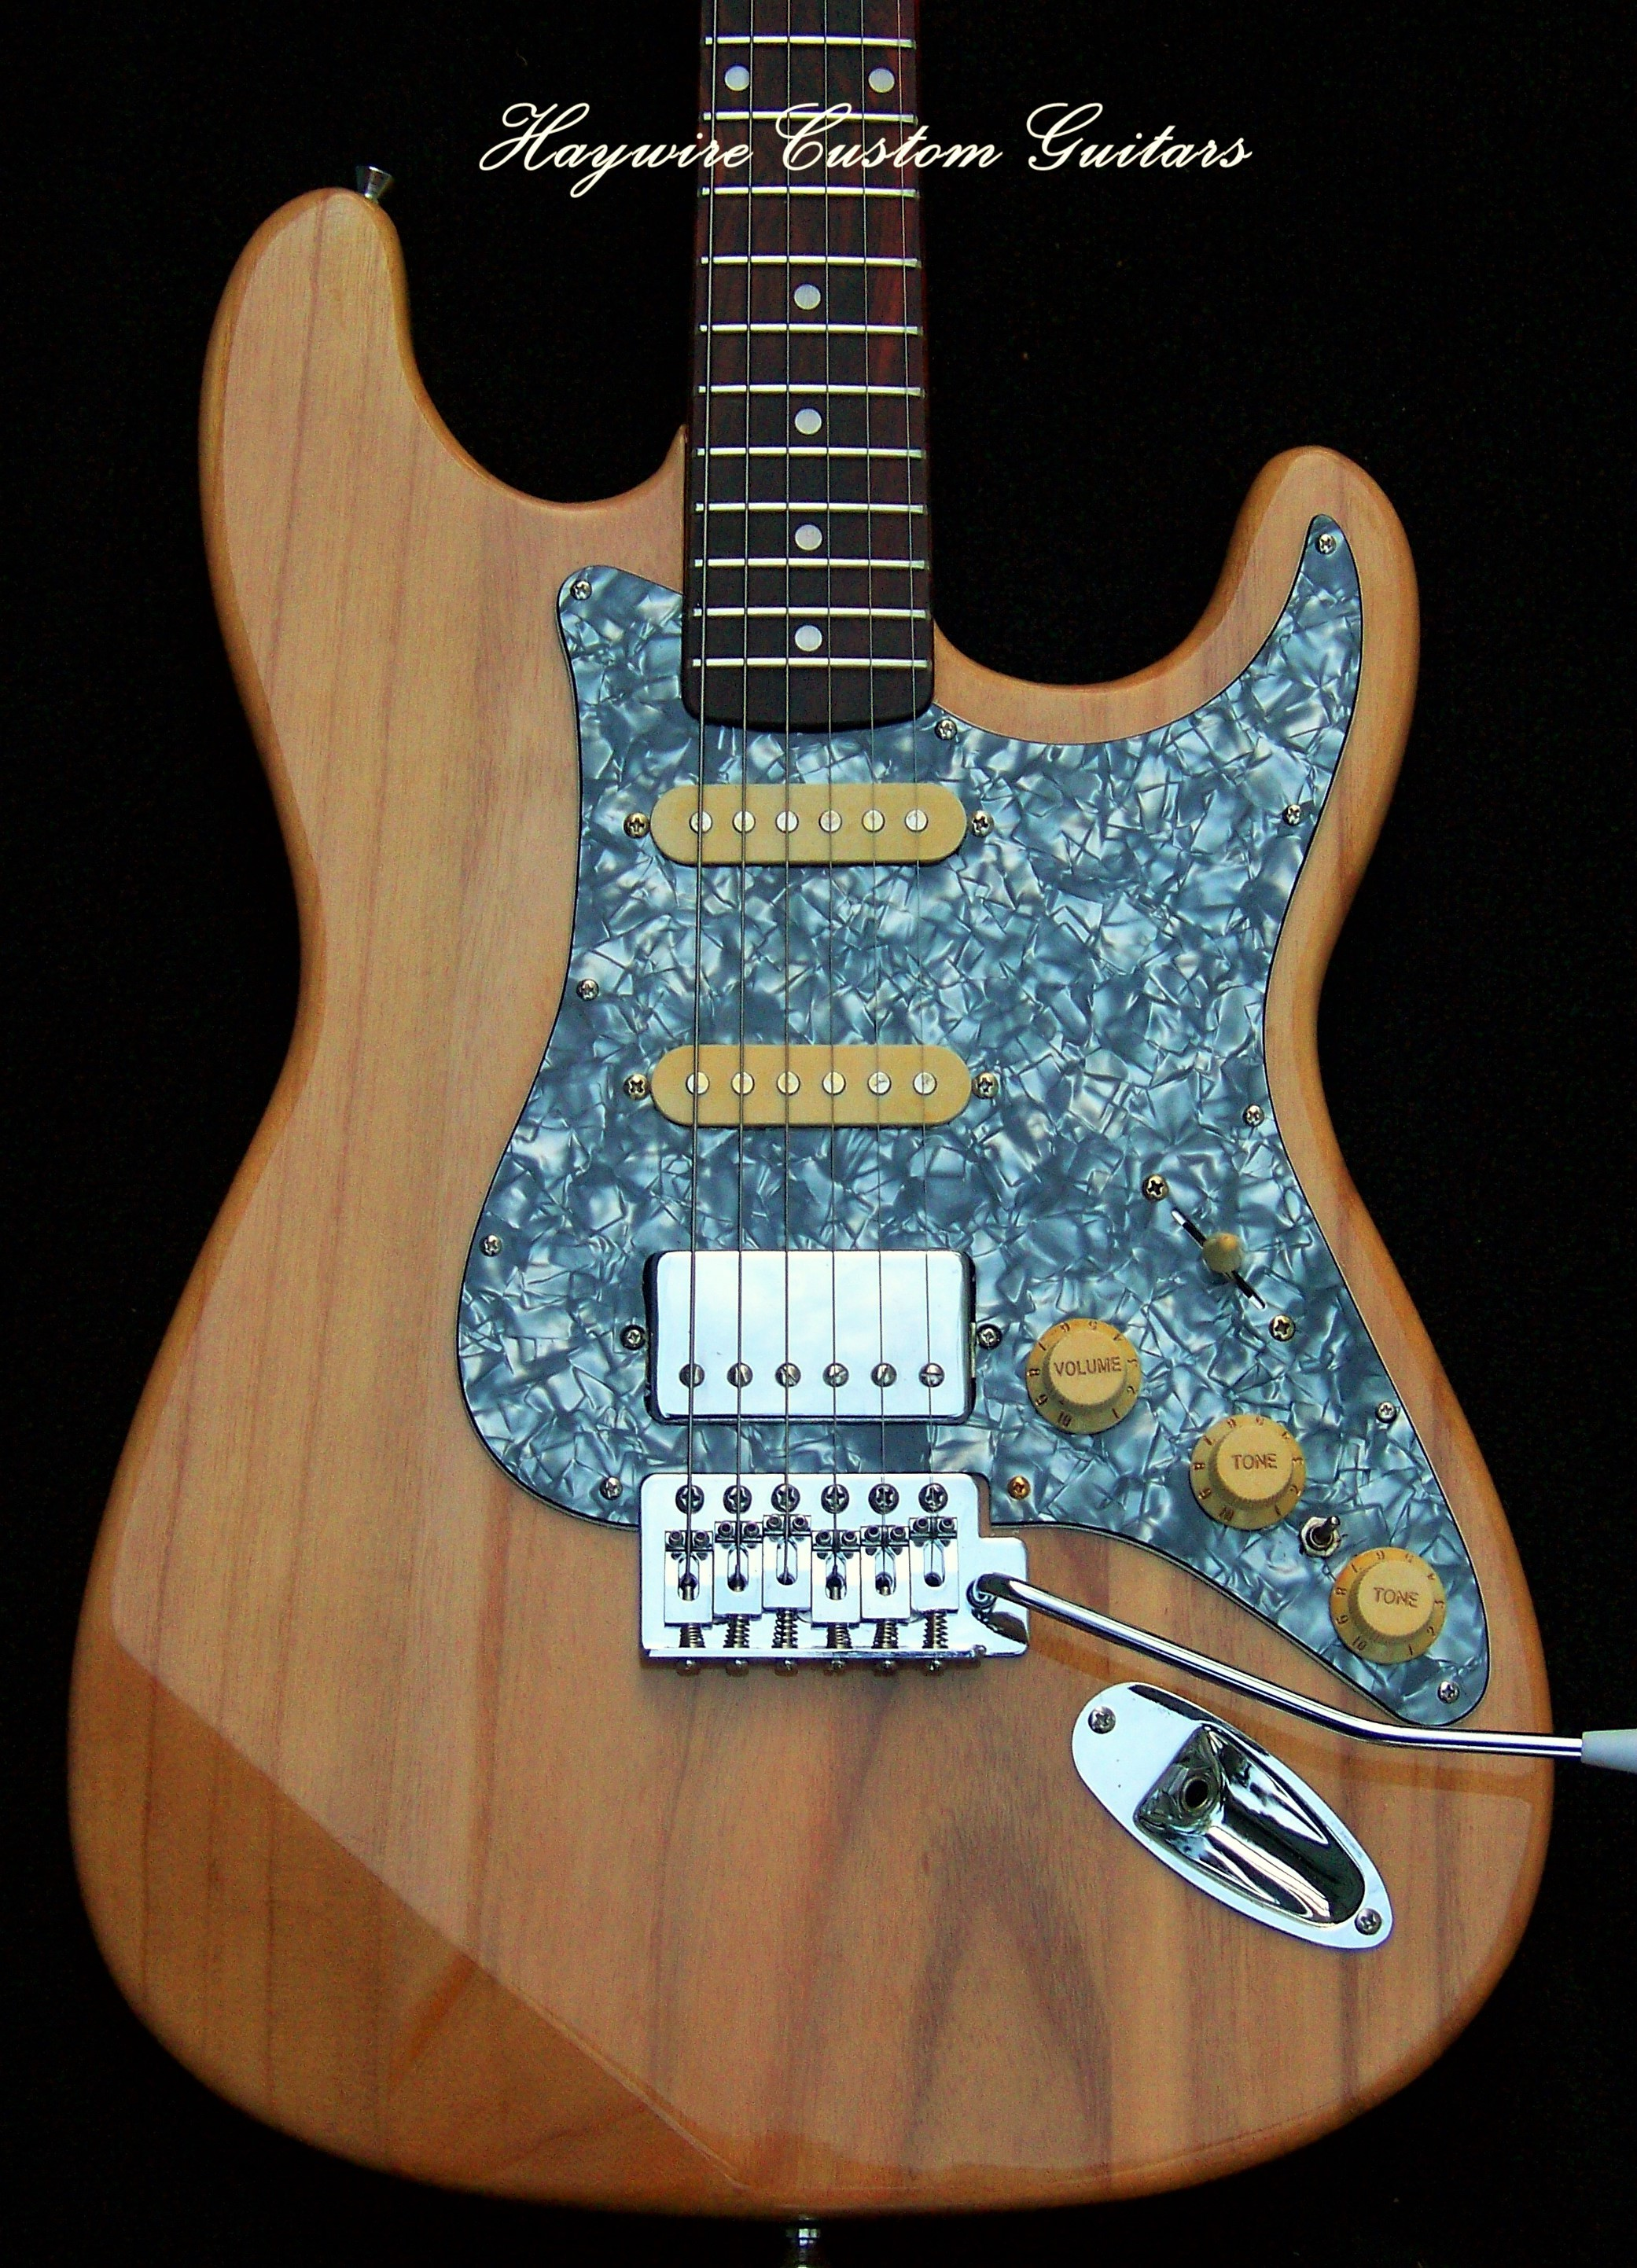 Haywire Custom Guitars Custom Shop